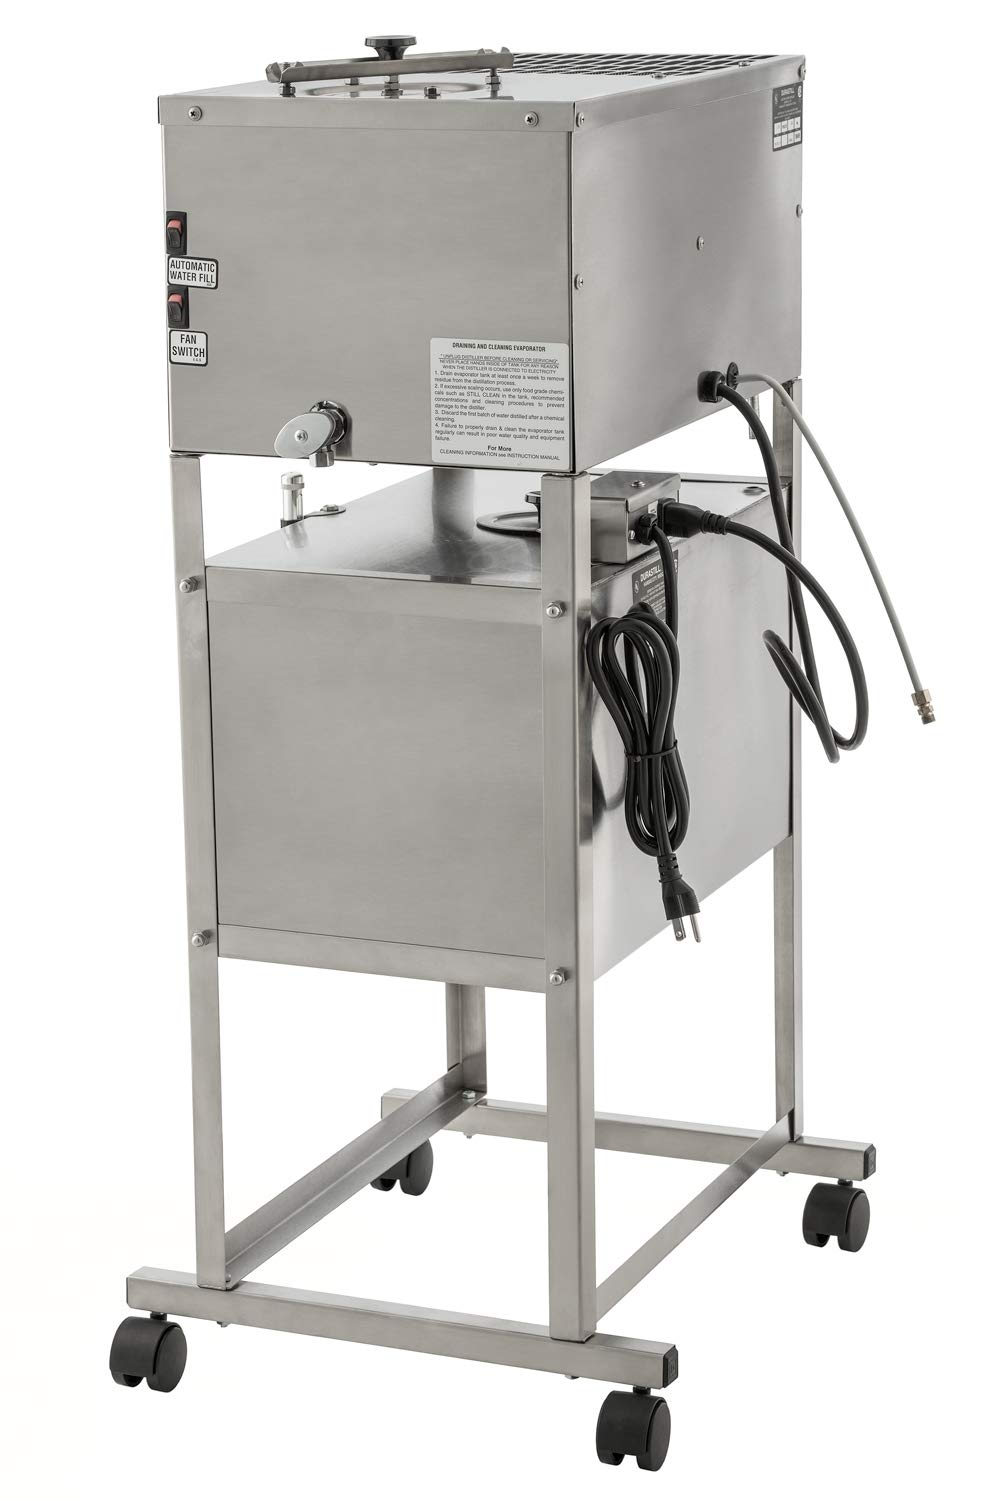 240 Volt Durastill 12 Gallon per Day Automatic Water Distiller Including 10 Gallon Reserve Tank with Casters and Level Gauge Deluxe Model 4640-240V